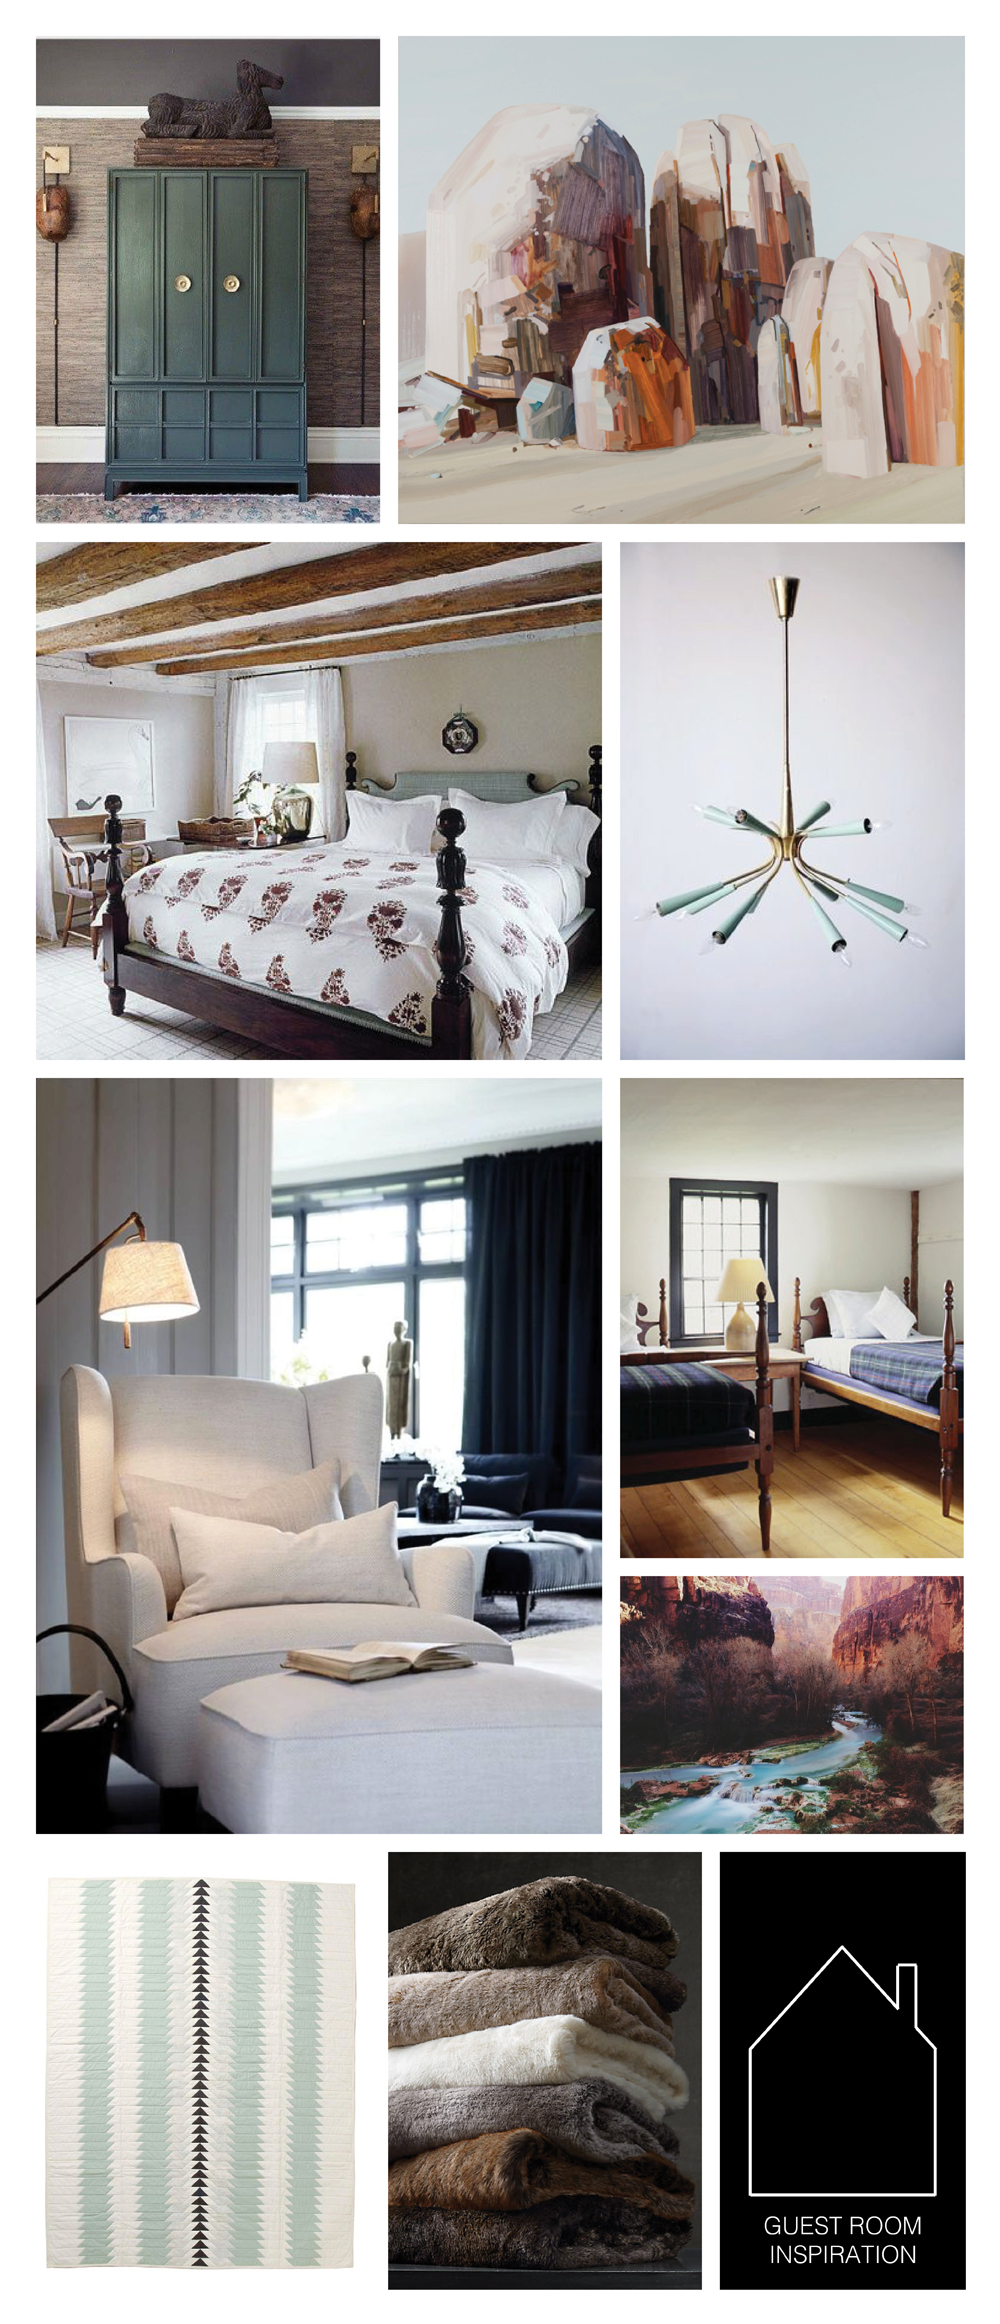 "from top left  - armoire source unknown - Boulder, 2012, 78"" x 90"",  Claire Sherman  - bedroom by  Tom Scheerer  - chandelier source unknown - reading chair source unknown - twin beds source unknown -  Havasu Canyon Creek  by  Kevin Russ  via  Society 6  -  Harrow Quilt  by  Meg Callahan  -  luxe faux fur throws  by  Restoration Hardware"